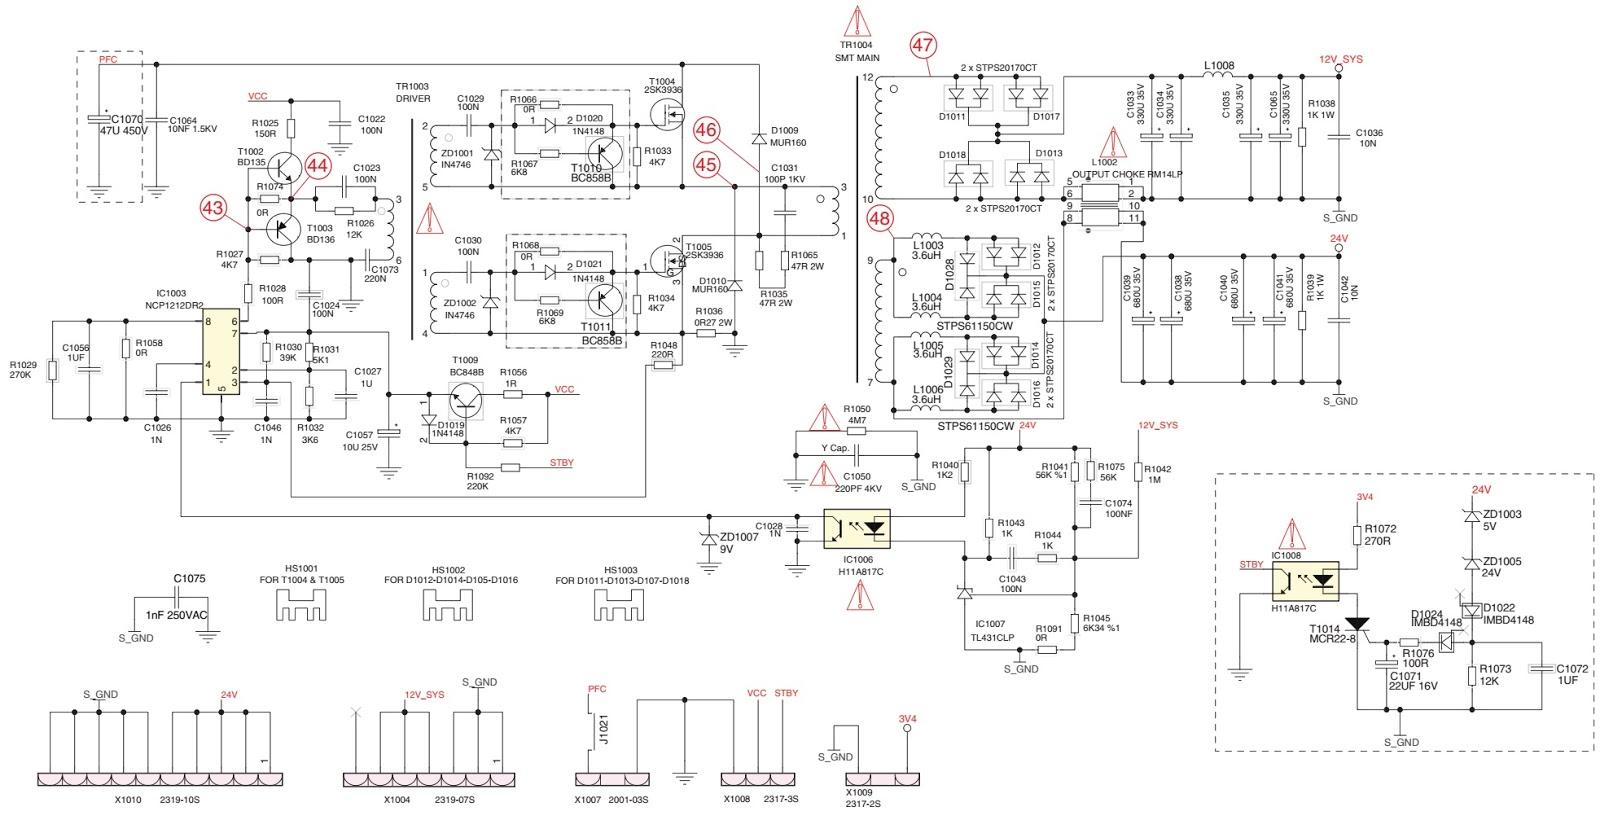 Schematic Circuit Diagram Of Lcd Tv Wiring Libraries Crt Monitor Block Electronics Repair And Technology News Grundig Smps Schematics Diagrams Homenolpower Supply Board Z4h194 06